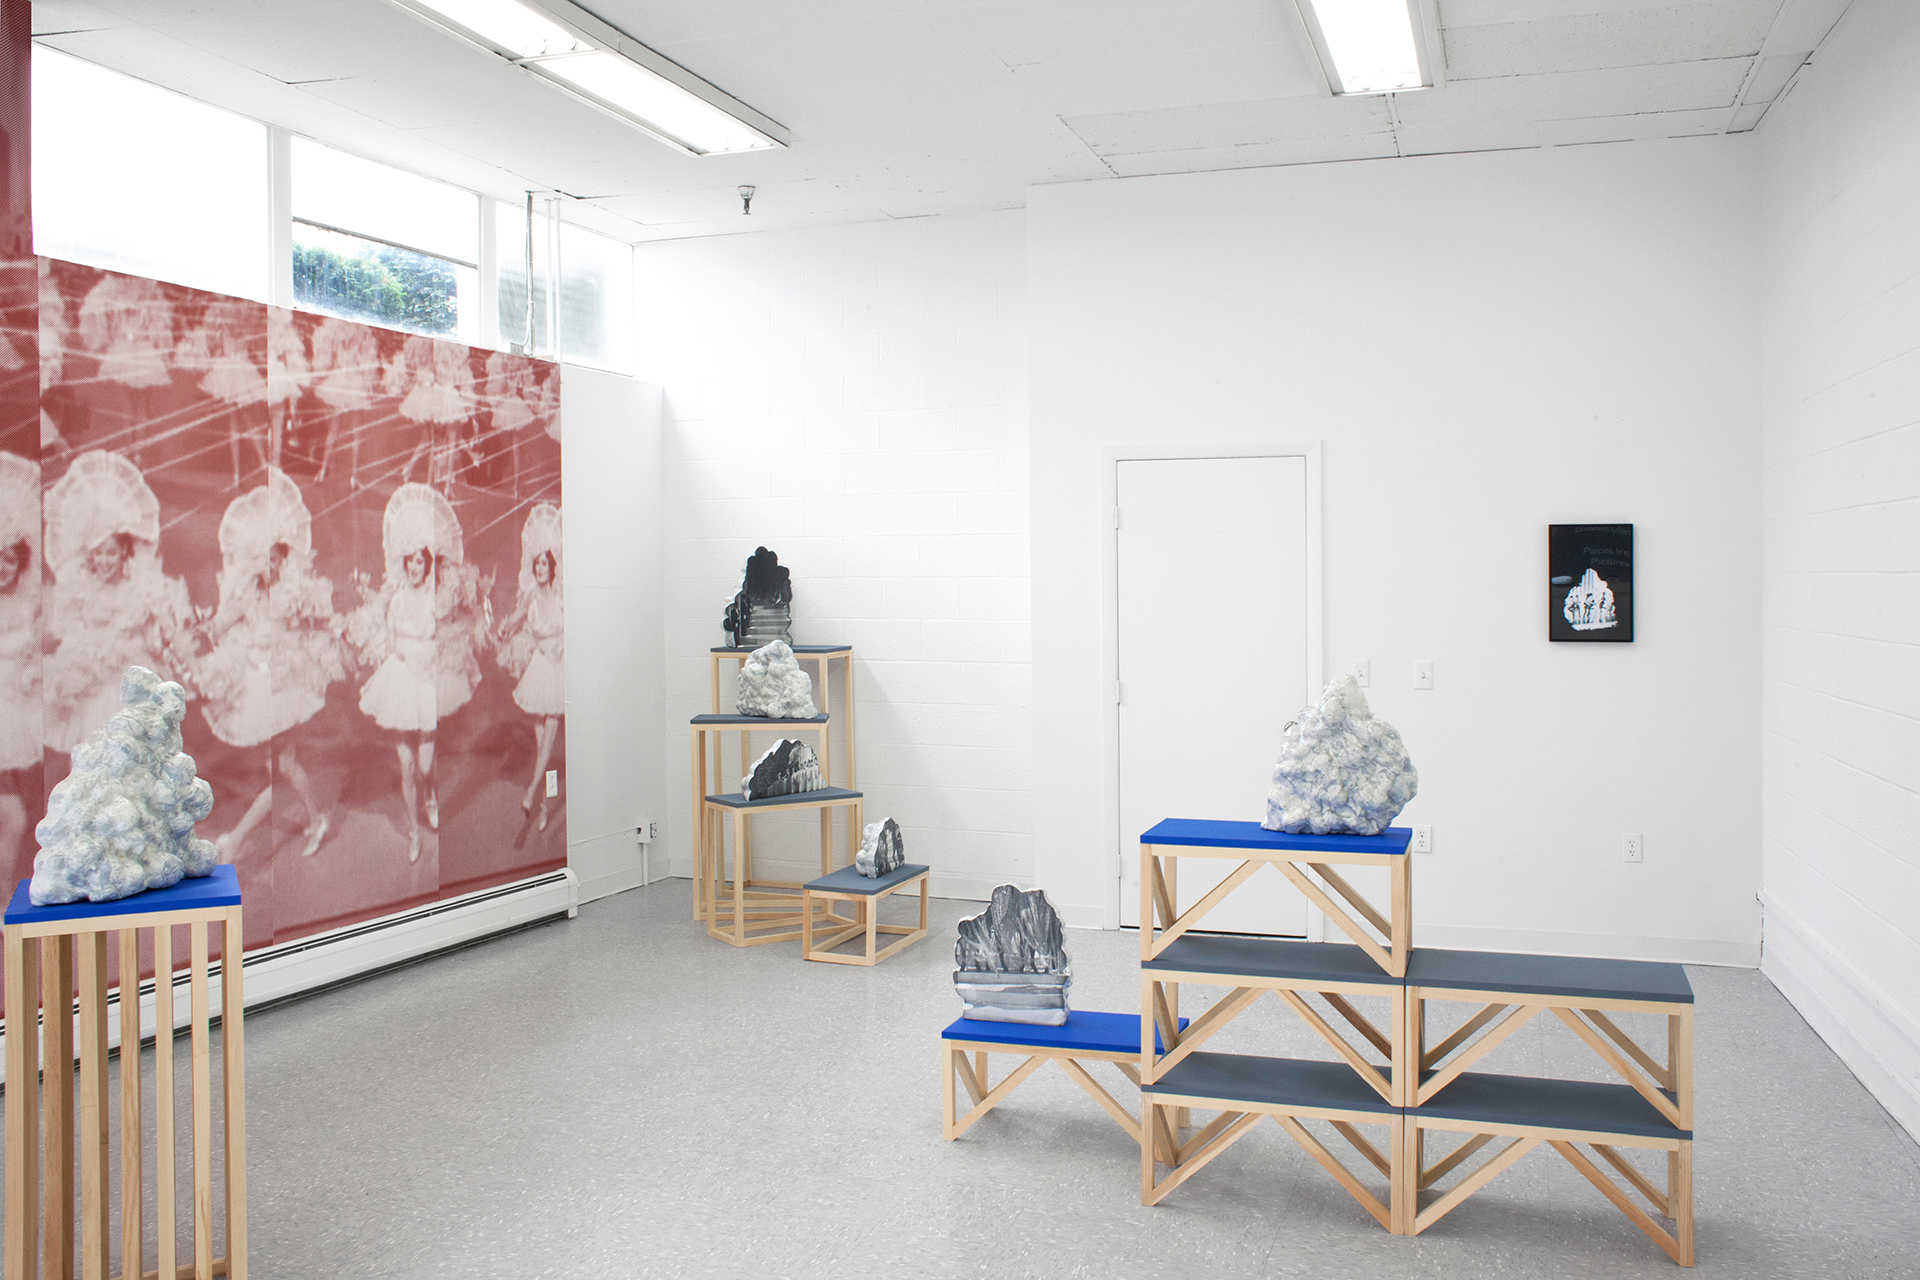 Elizabeth Corkery, Pieces from Pictures (installation view), 2017, Wood, expanding foam, expoxy resin, screenprint, archival digital print. Dimensions variable